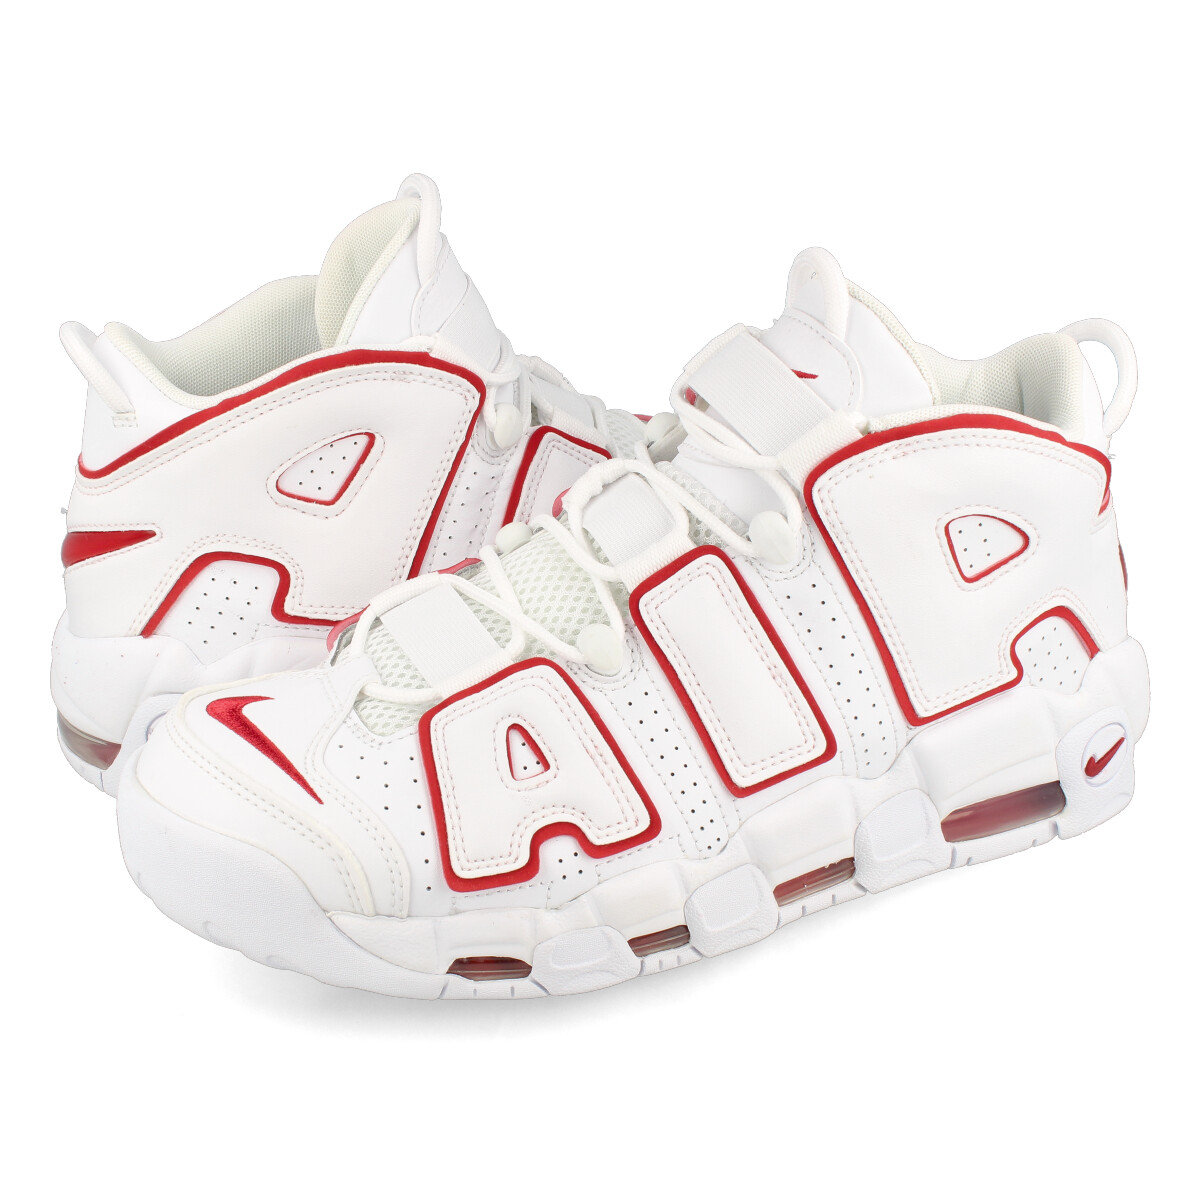 free shipping 6f911 09a8f NIKE AIR MORE UPTEMPO 96 Nike more up tempo 96 WHITEVARSITY REDWHITE